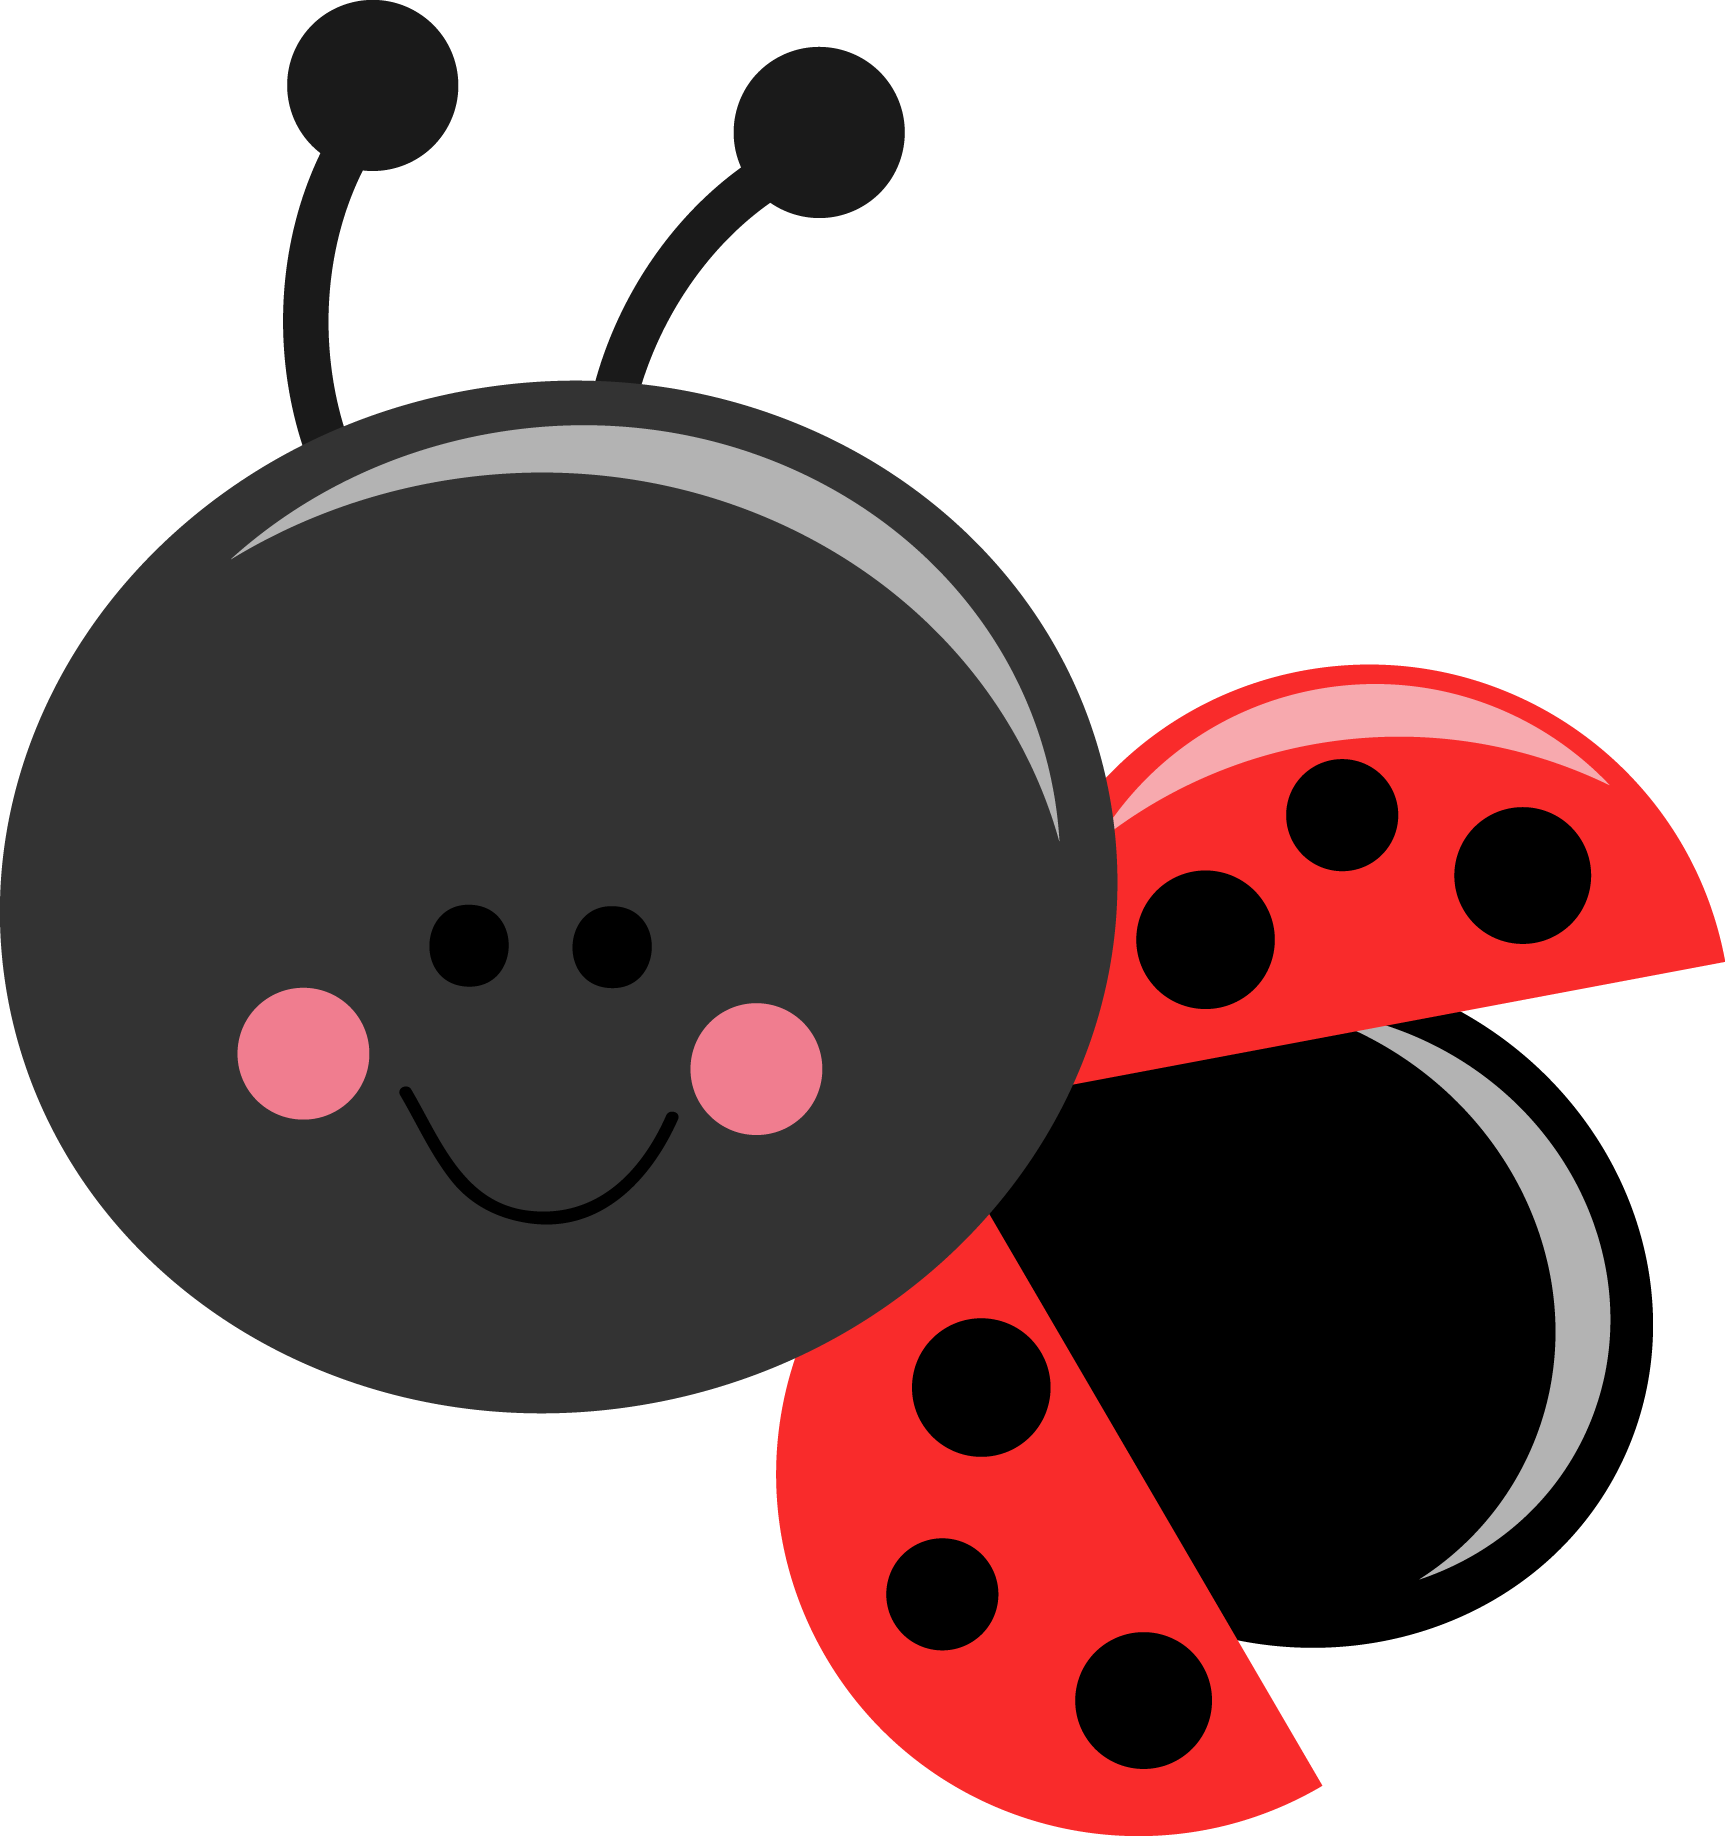 Beetle ladybug free collection. Sleigh clipart cute